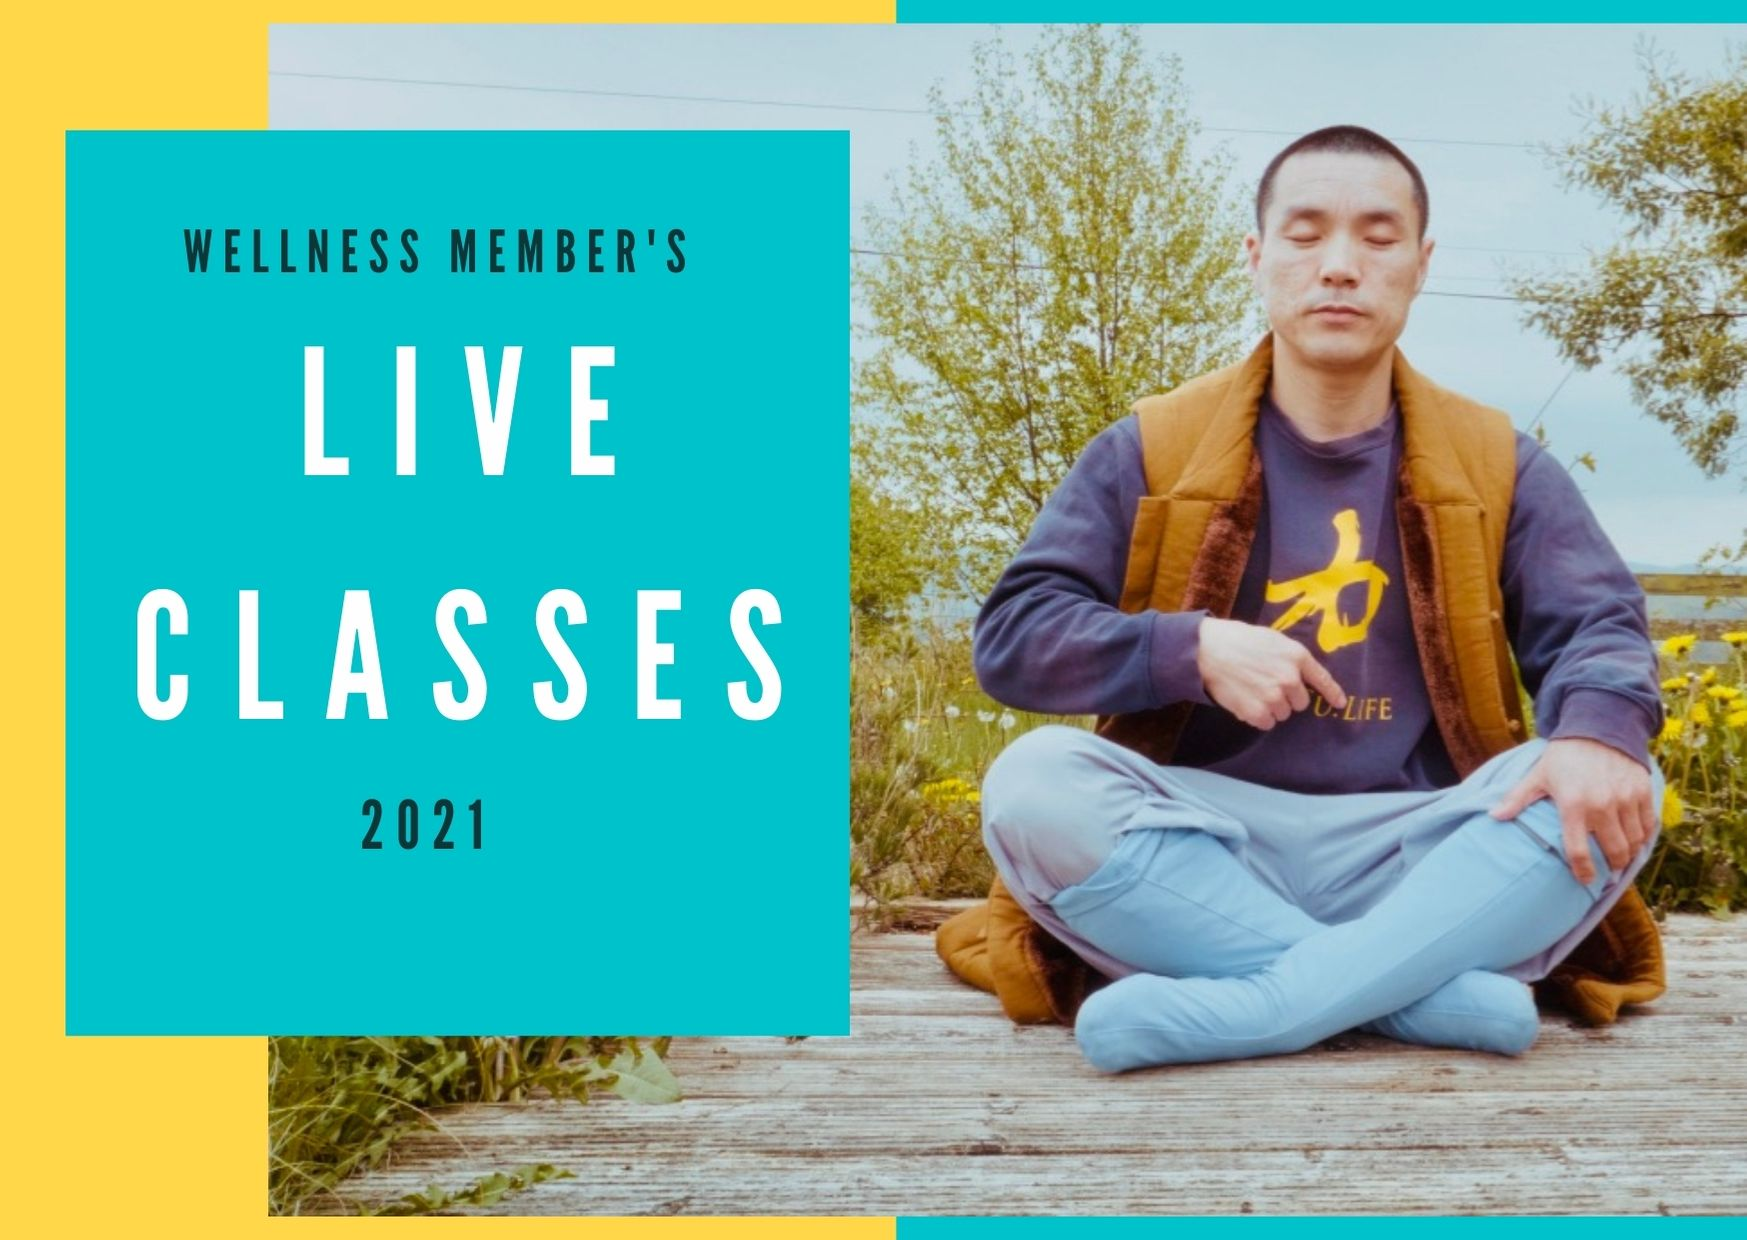 2021 Wellness Member's Interactive Live Classes